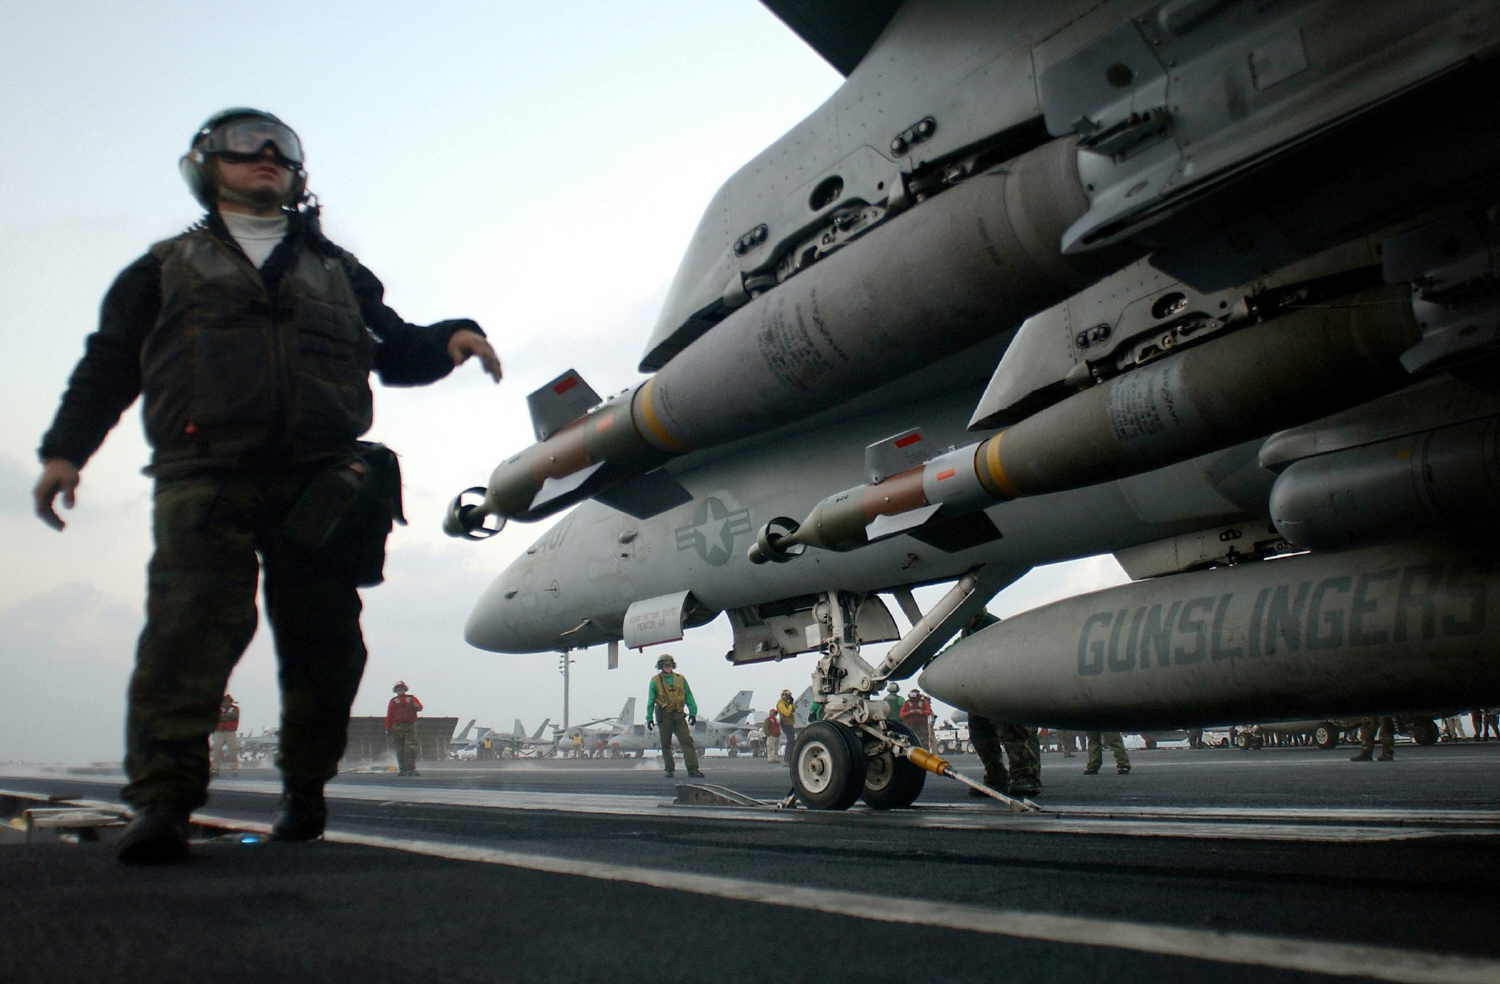 FA 18C launching from the deck of the USS Harry S. Truman CVN 75